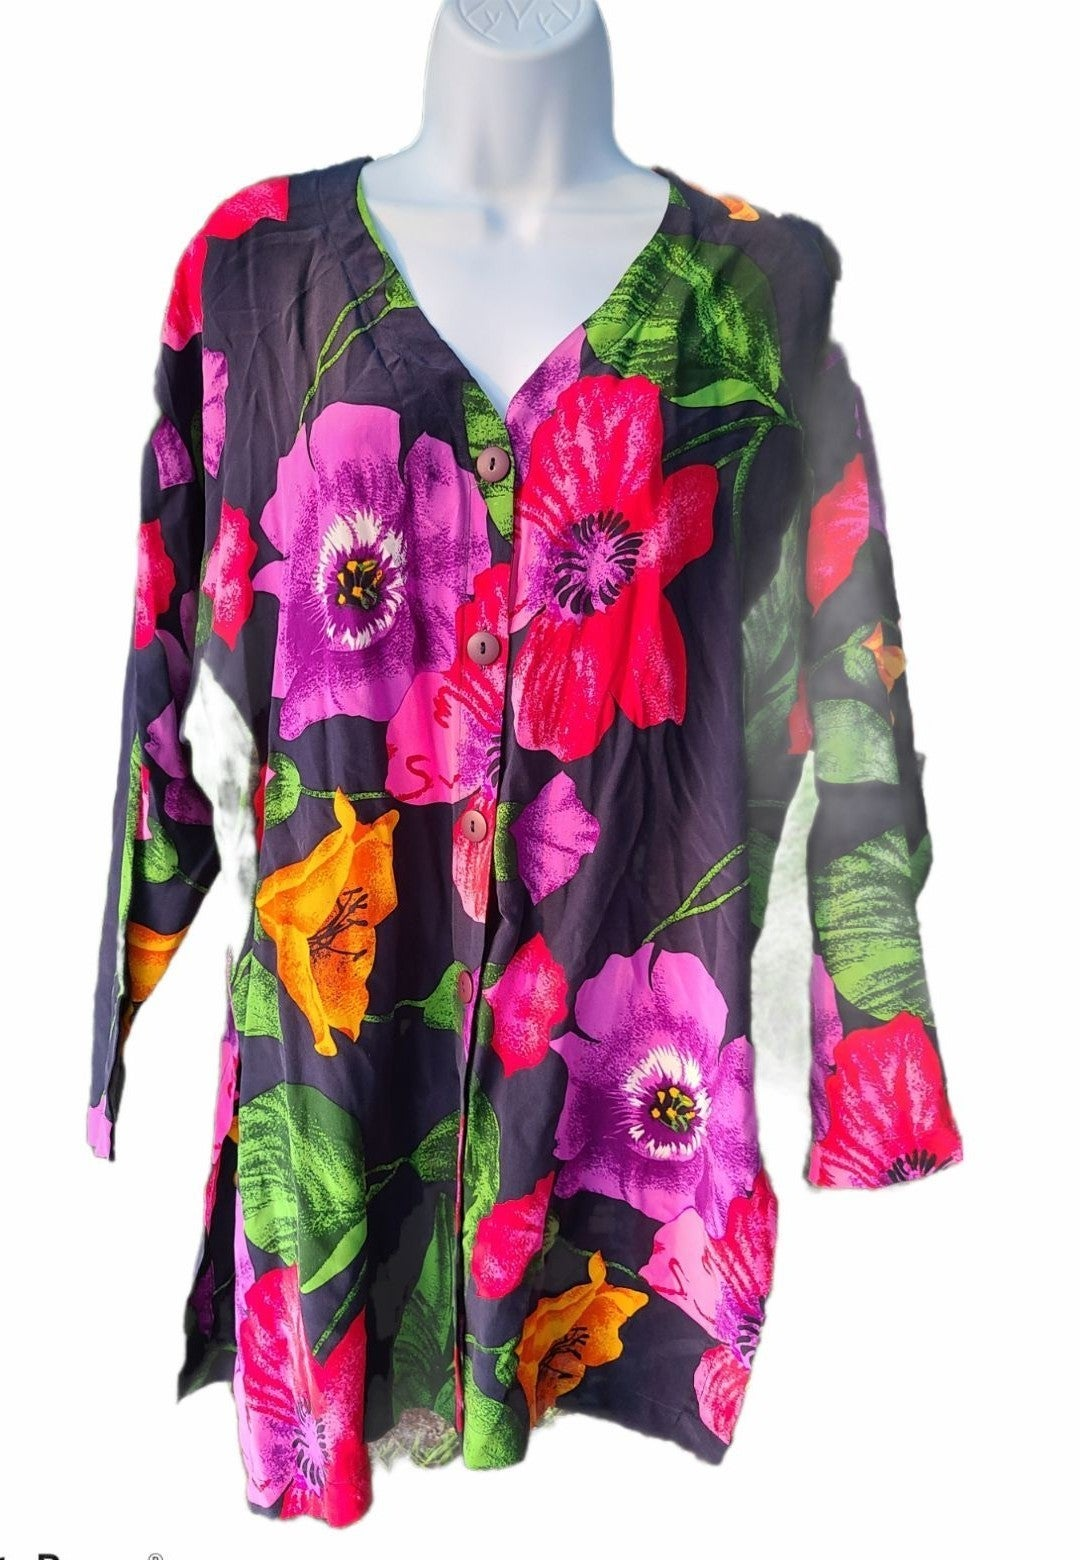 Vintage Alfred Sung silk floral tunic 4